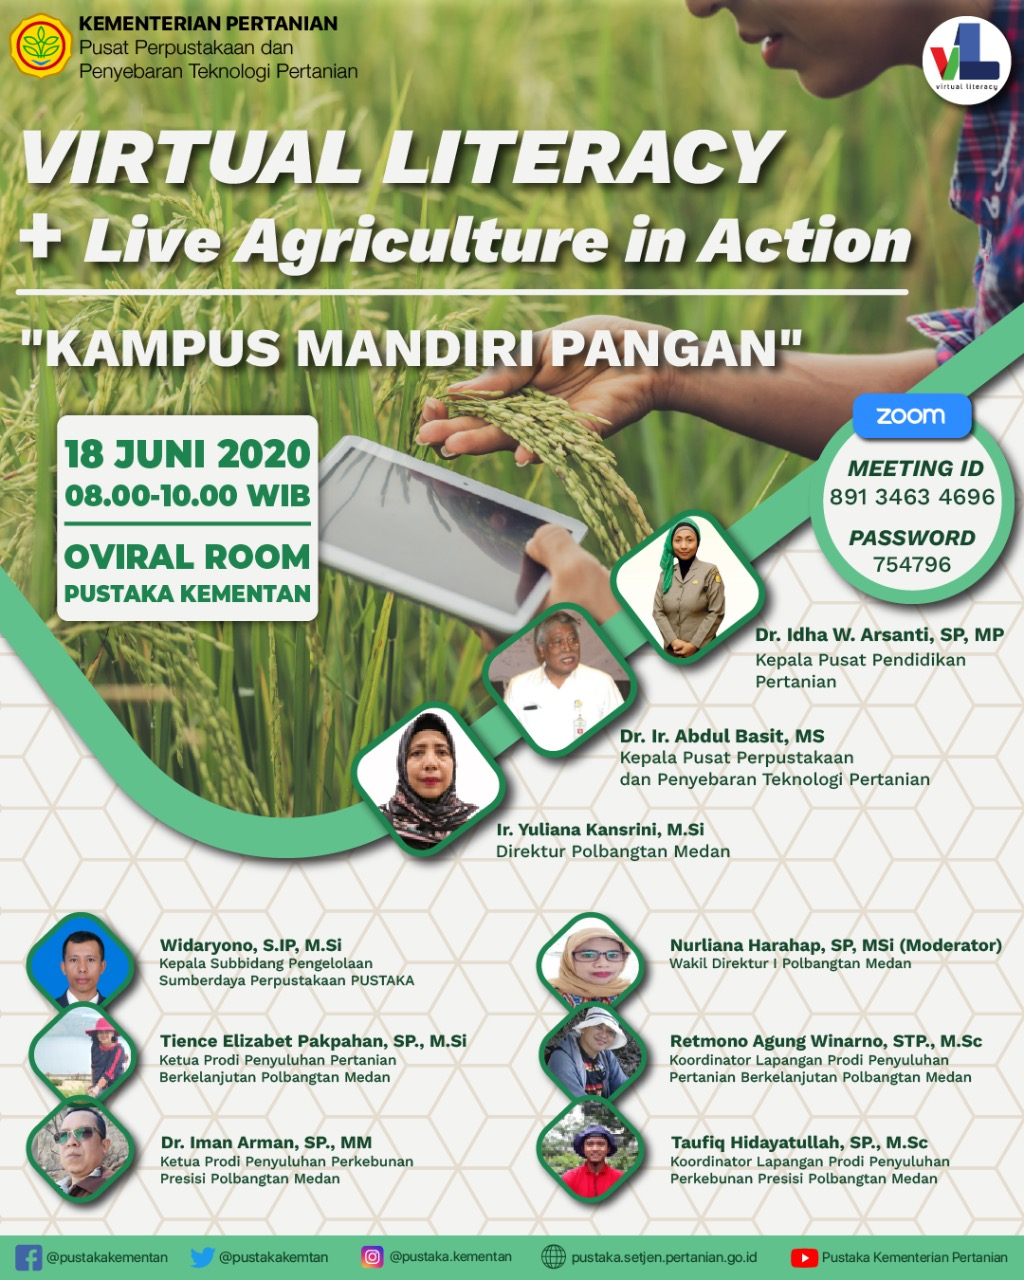 Virtual Literacy + Live Agriculture in Action